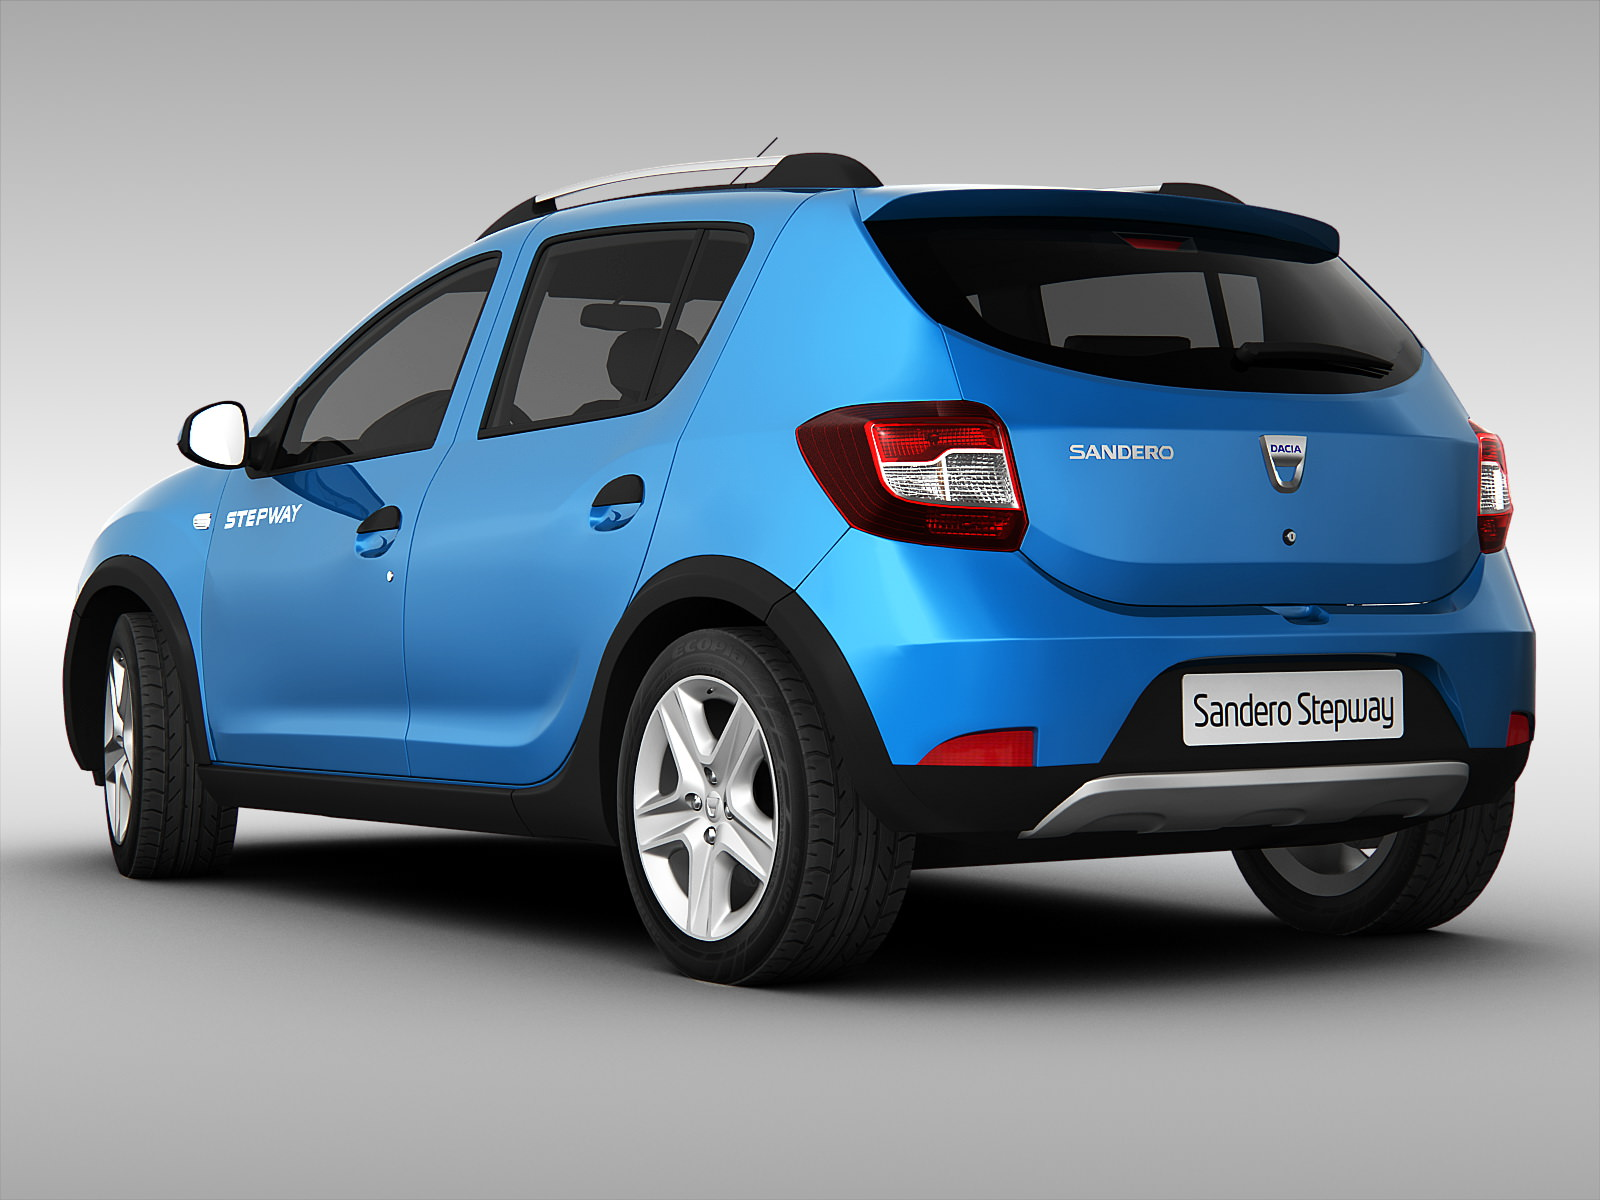 photos dacia sandero 2 stepway. Black Bedroom Furniture Sets. Home Design Ideas